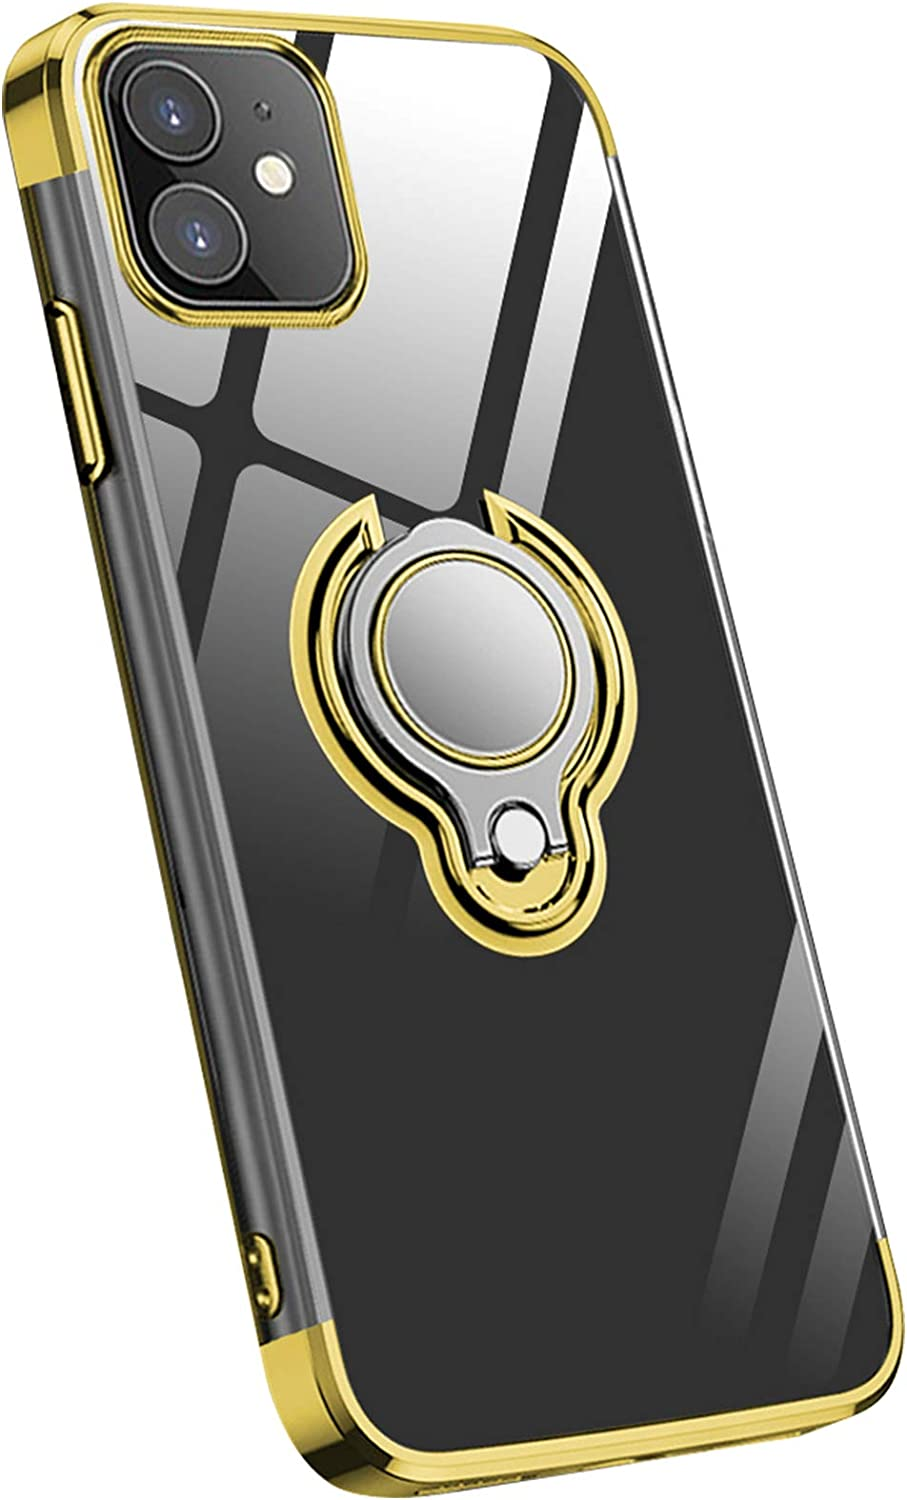 Smartphone Case for iPhone 12/iPhone 12 Pro Clear TPU with Gold Electroplate Bumper Shockproof Impact Protection Slim Flexible 360°Rotation Ring Kickstand Designed for iPhone 12/12 Pro【6.1 inch】